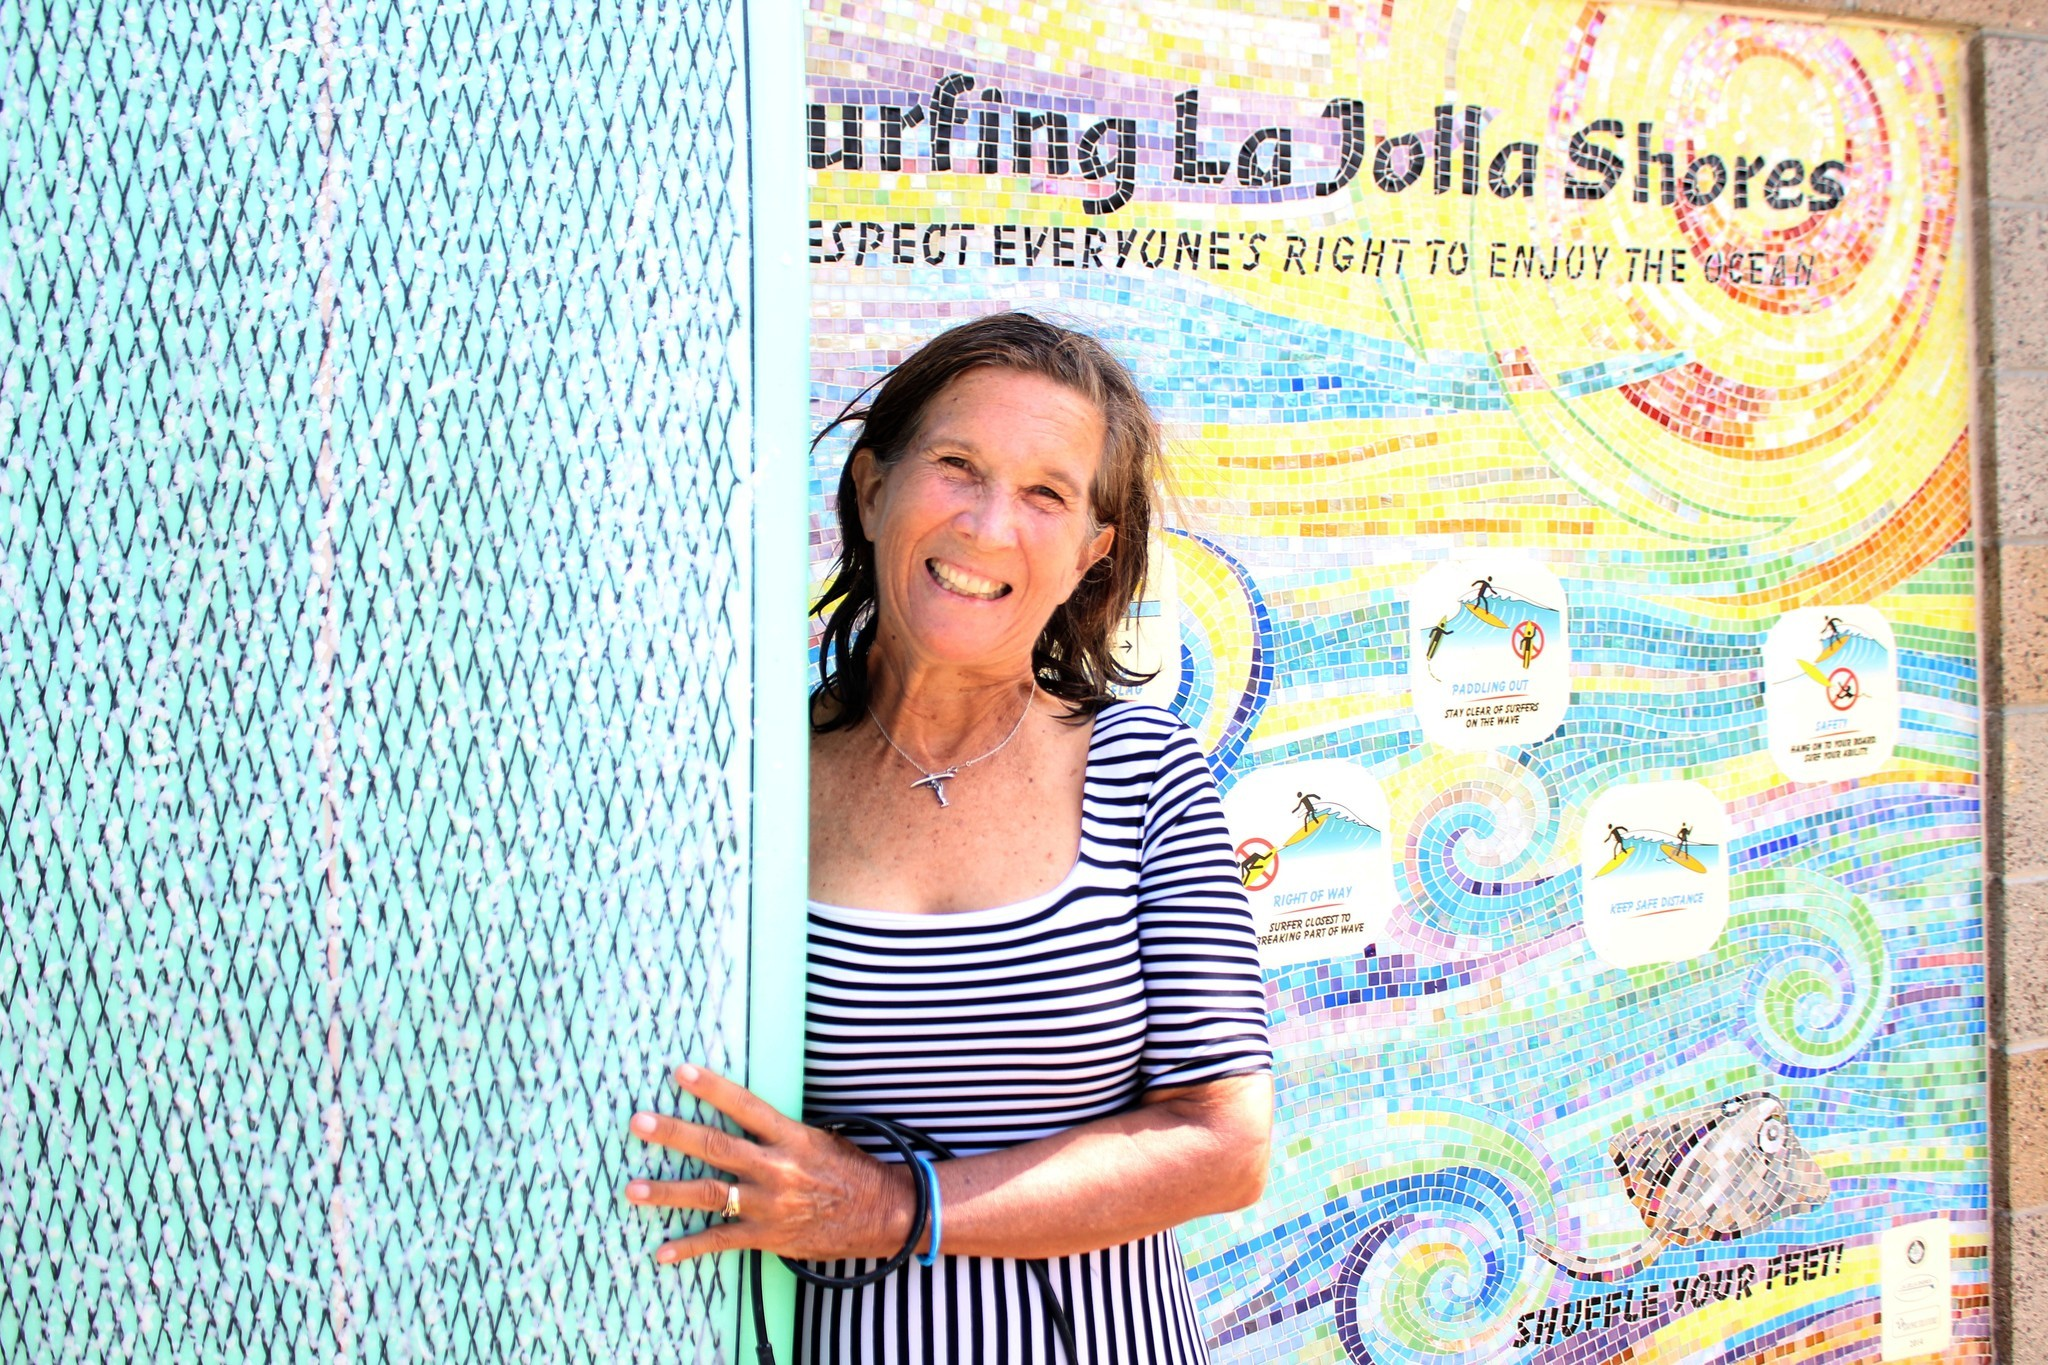 Lorraine Schmalenberger, president of the La Jolla Shores Surfing Association, poses with her board in front of a $10,000 mural that WindanSea Surf Club donated the fi